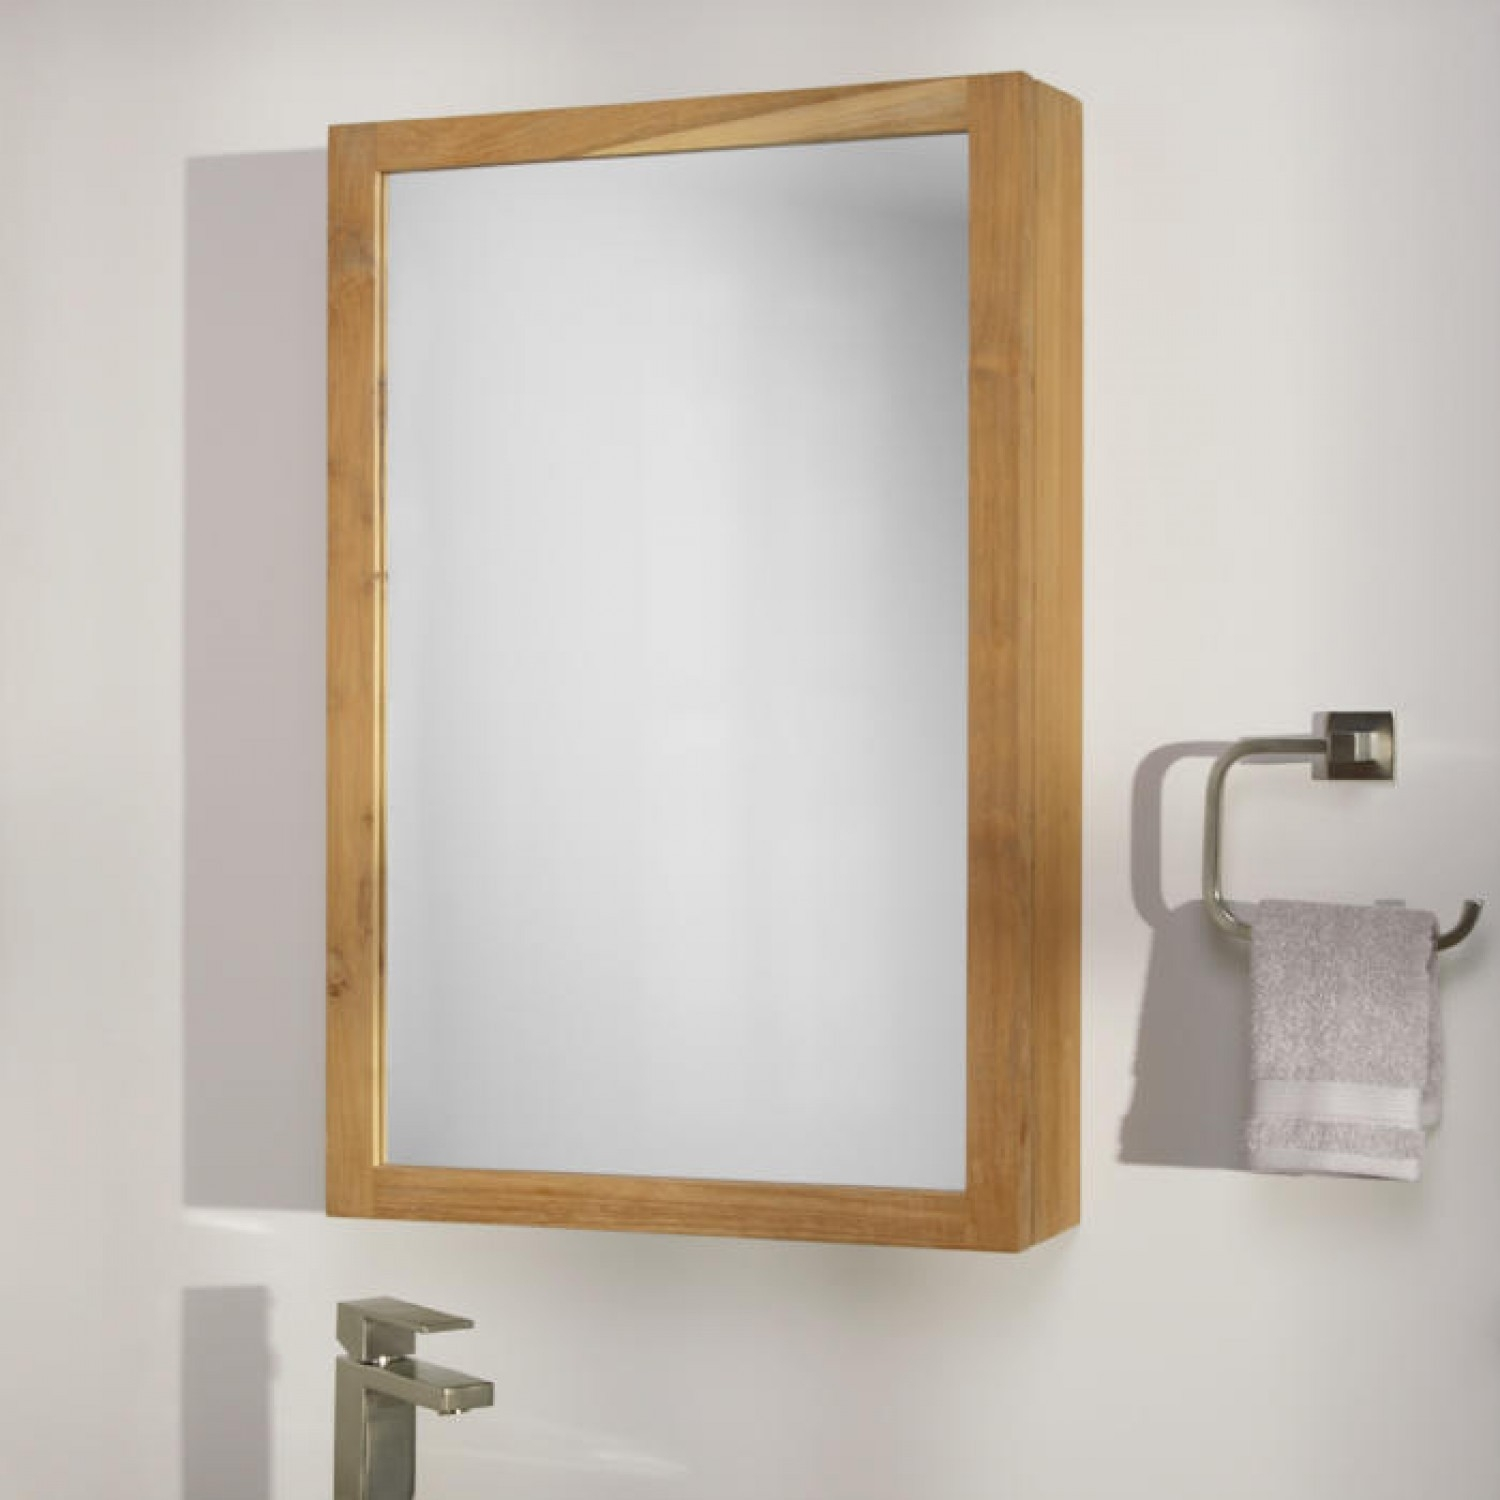 Small Mirrored Bathroom Wall Cabinets